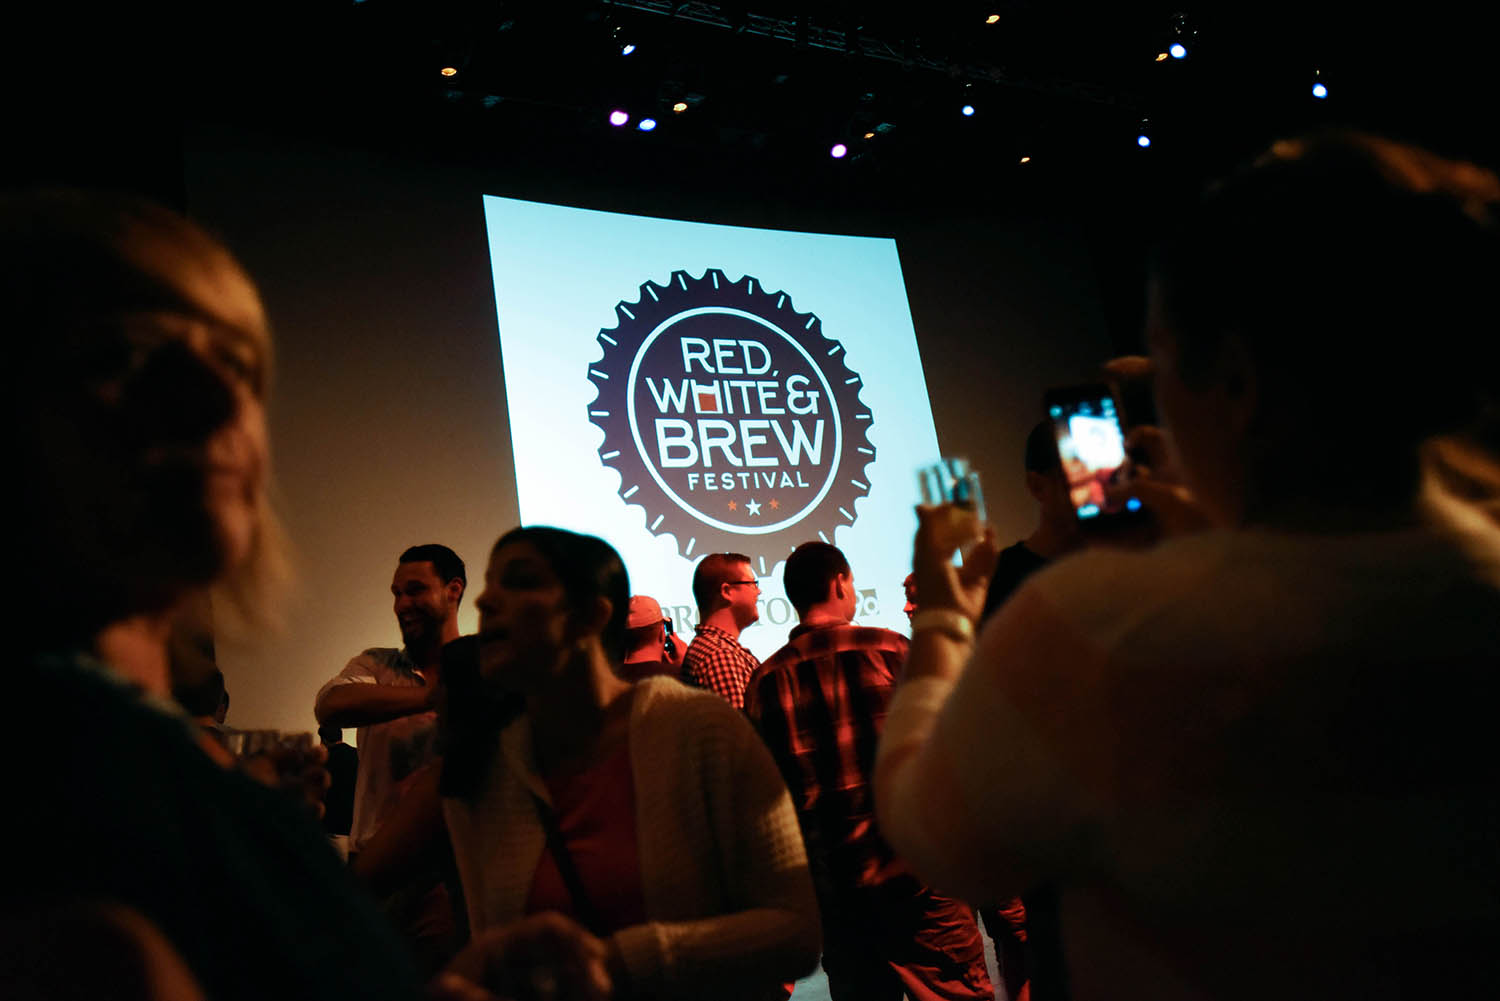 Hundreds of people kicked off their July 4th holiday weekend at Red, White & Brew at Proctors Friday, June 30, 2017.